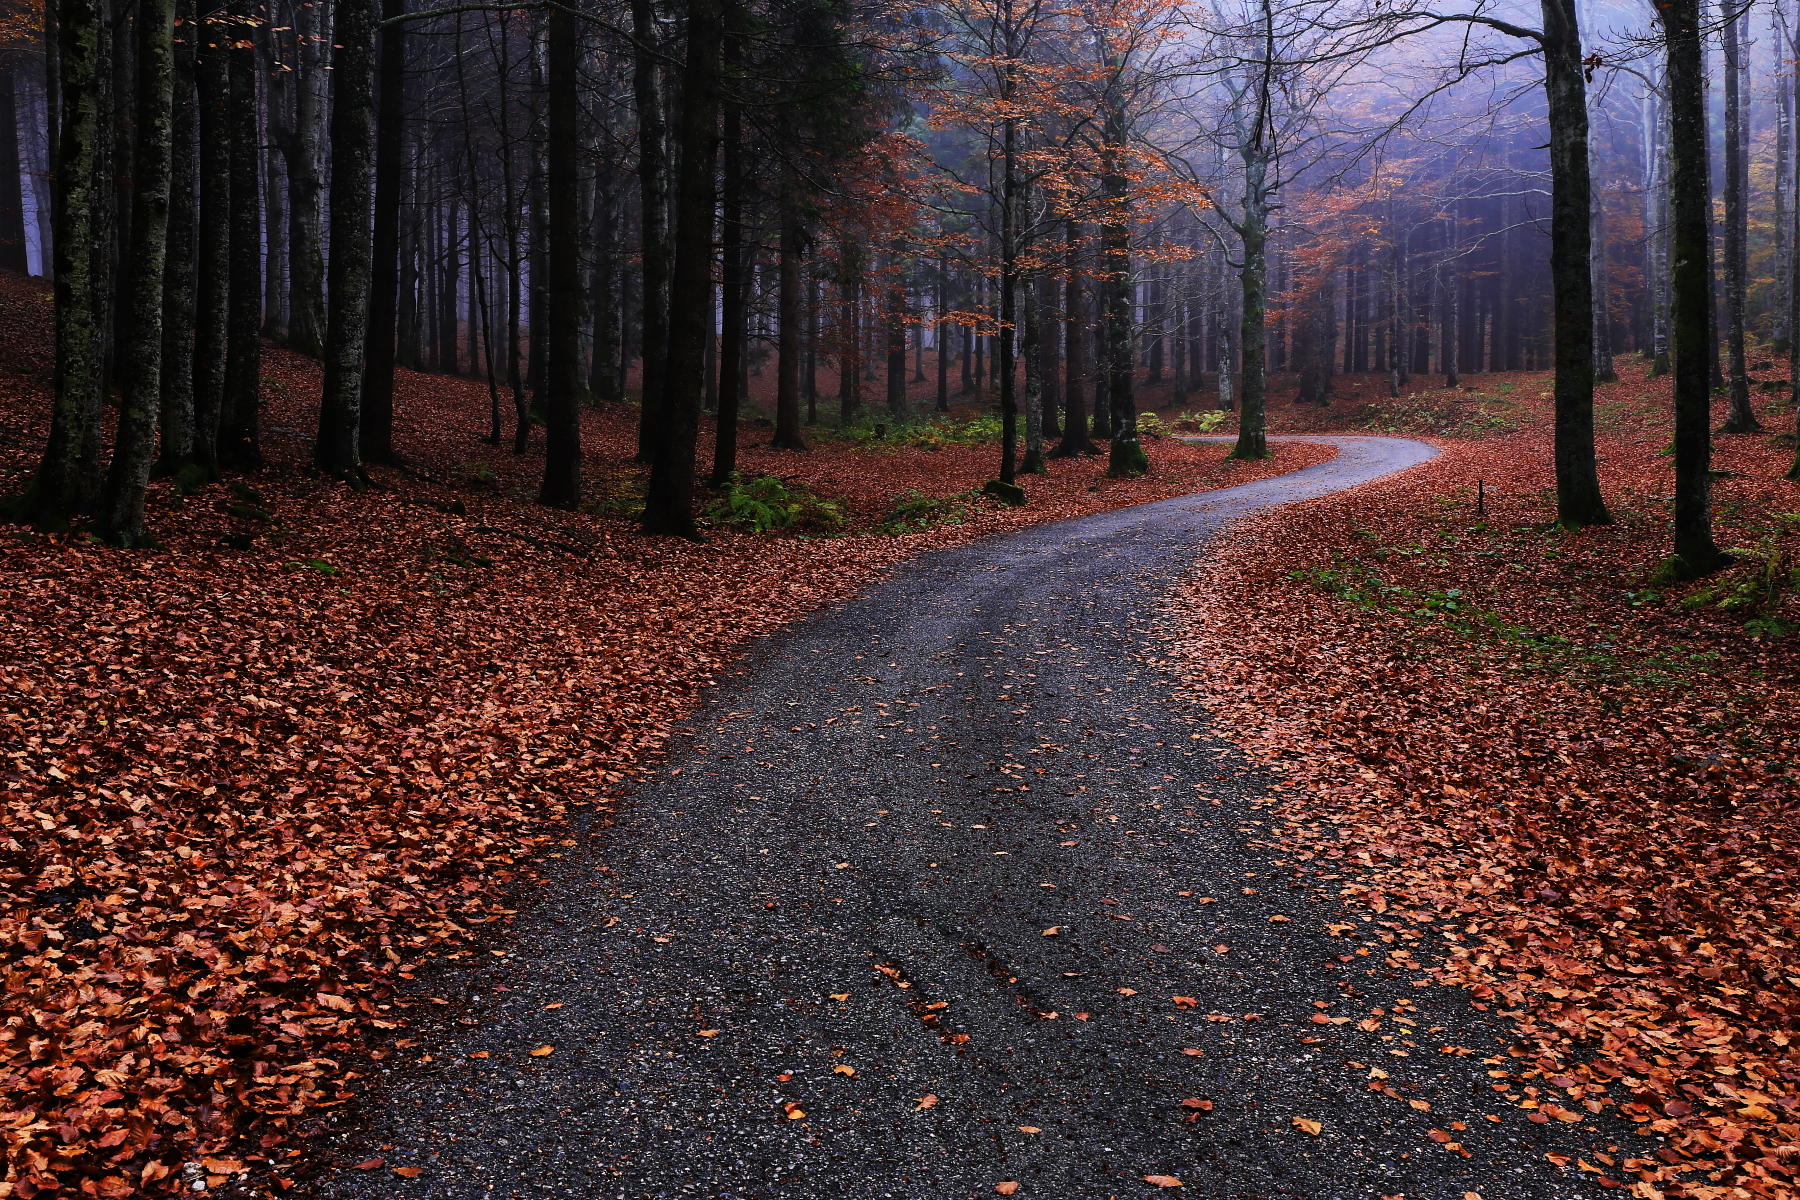 The road in the forest...